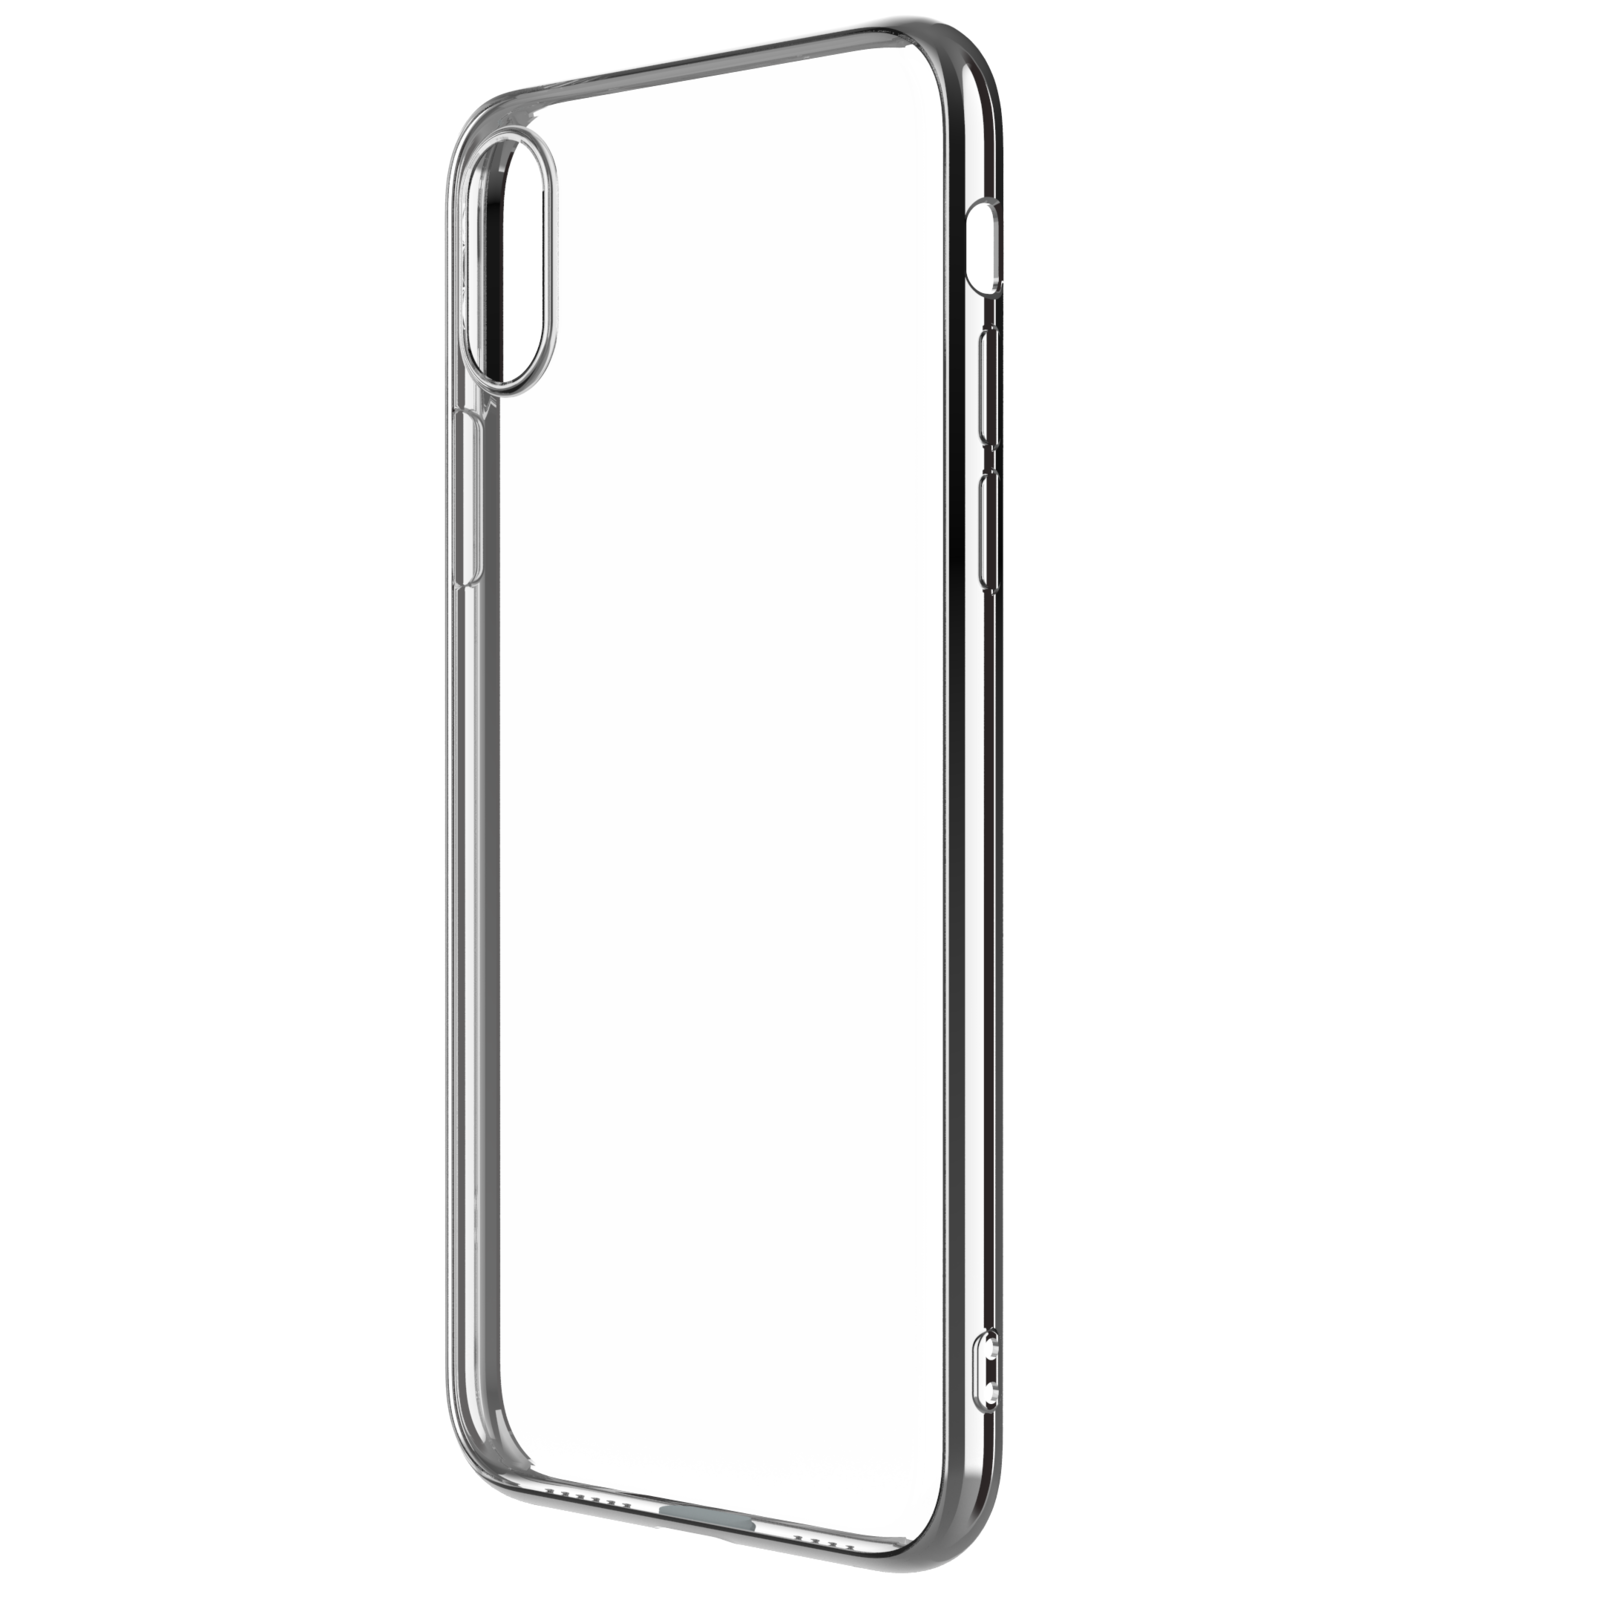 iPhone-XS-Max-XR-XS-X-Case-Genuine-DEVIA-Chrome-Case-Soft-Gel-Cover-for-Apple thumbnail 16